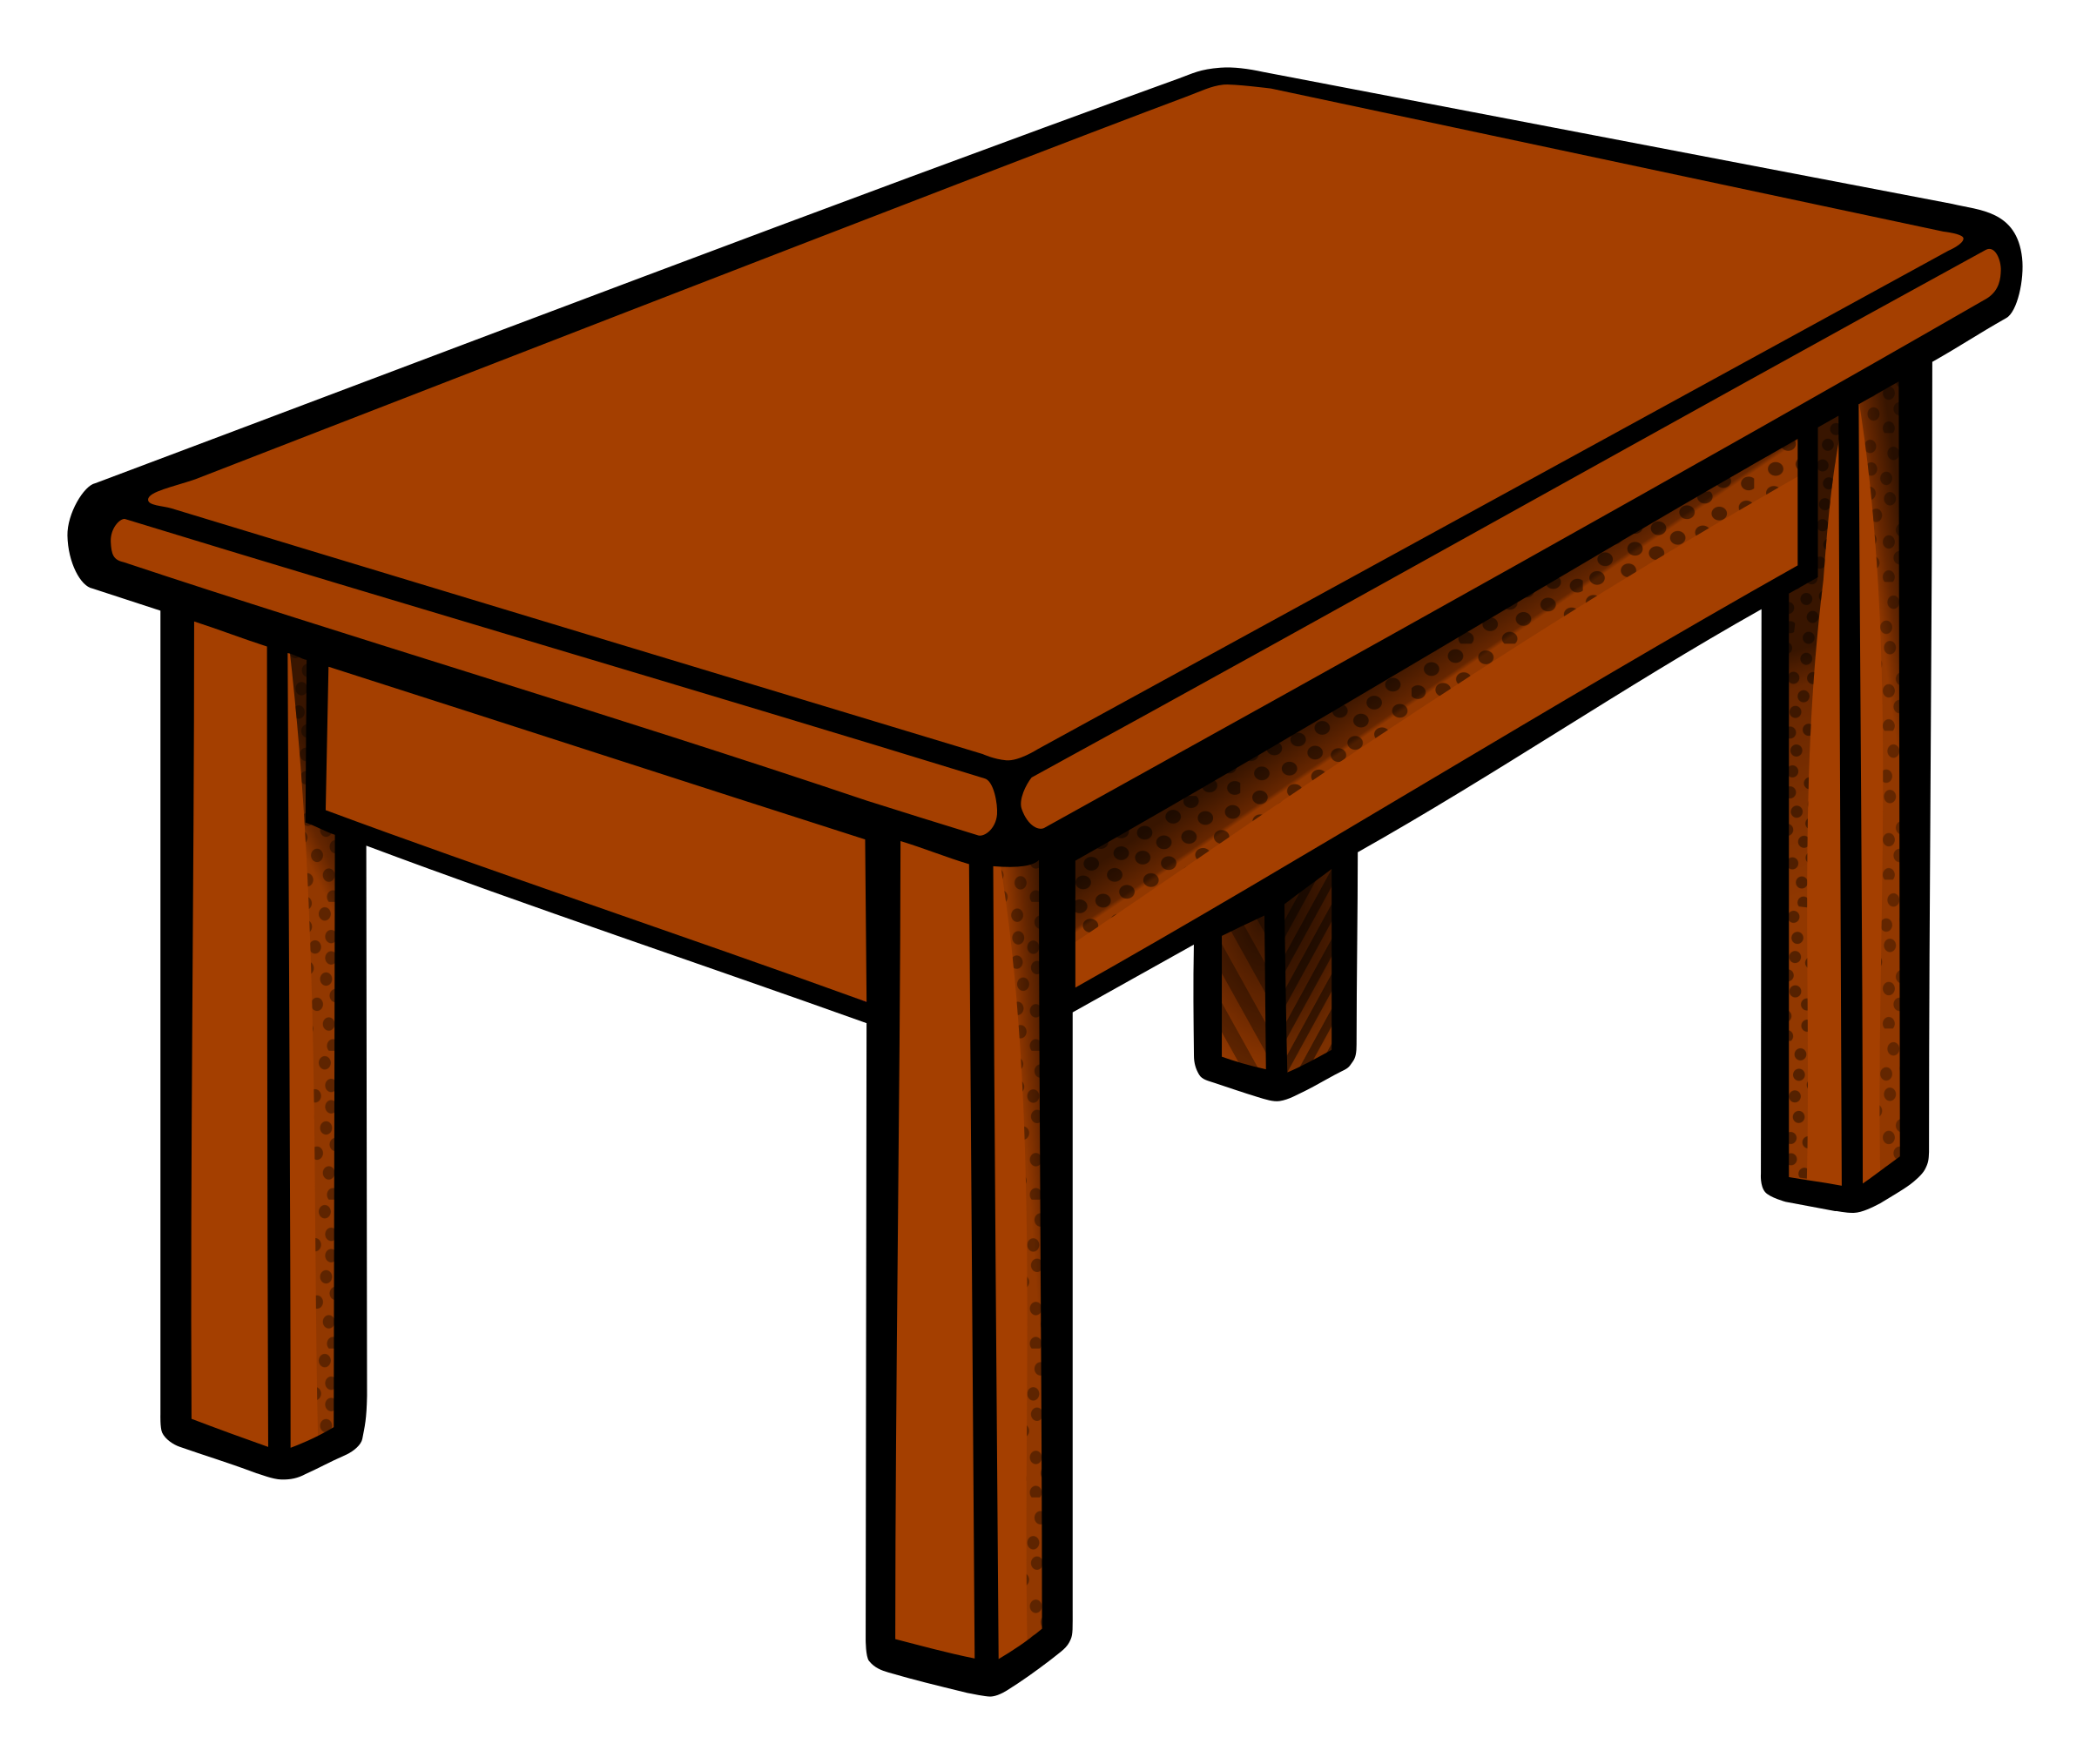 brown table clipart 20 free Cliparts | Download images on ...